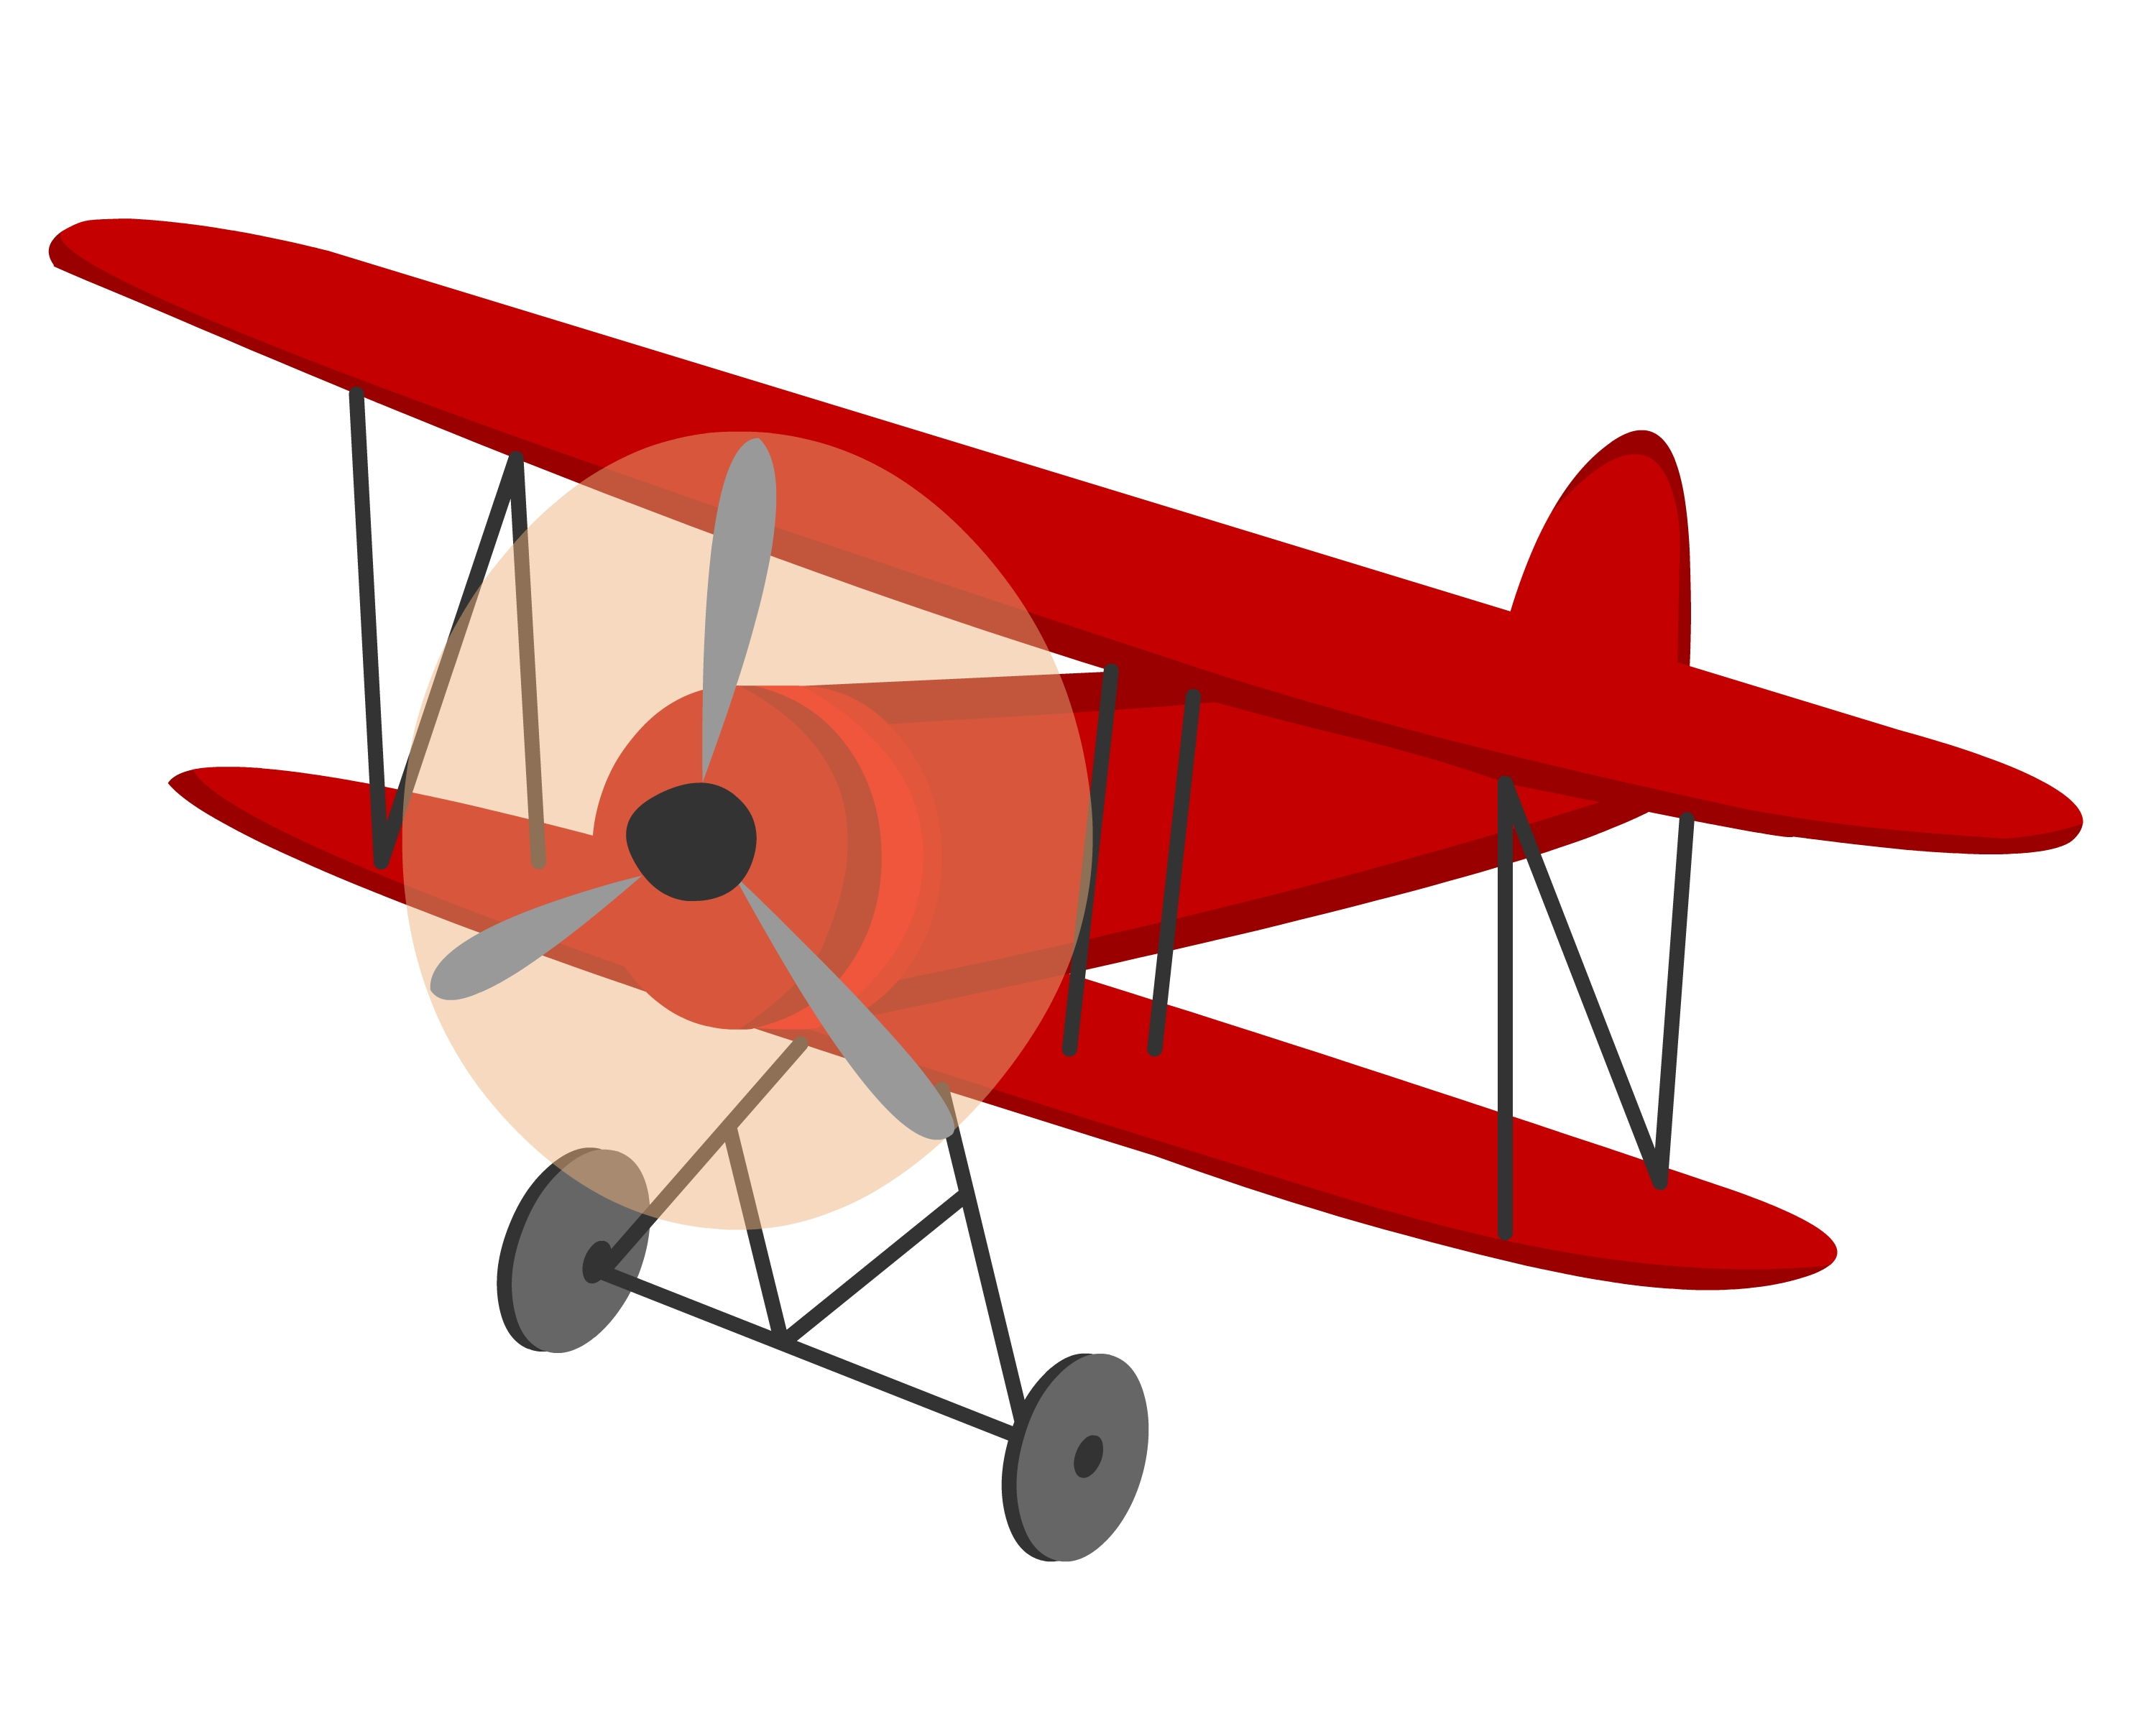 Pilot clipart red vintage airplane #5